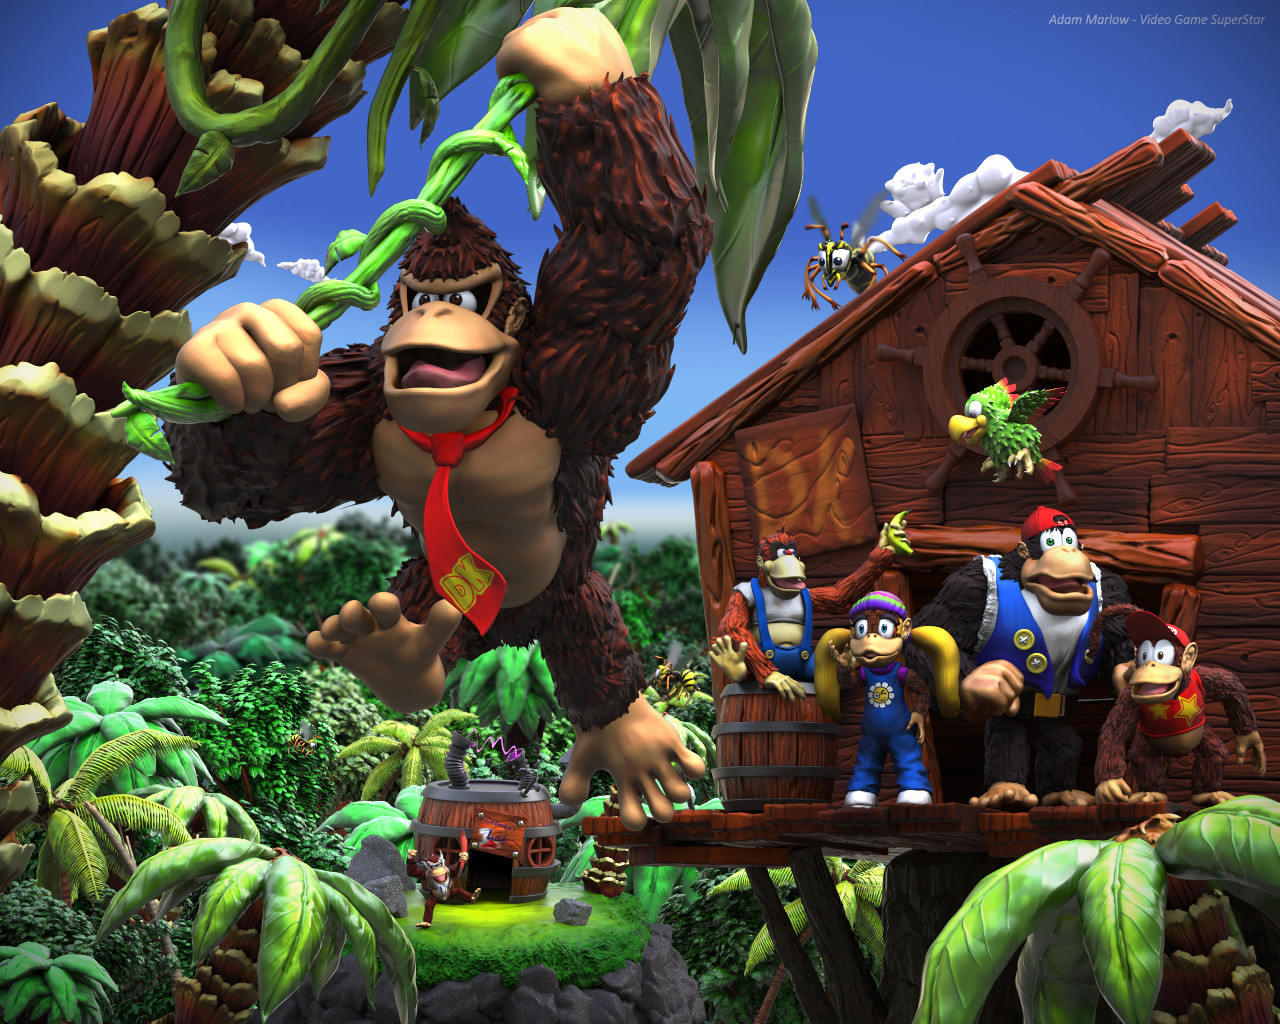 ArtStation - Another day for the DK Crew - Donkey Kong ...